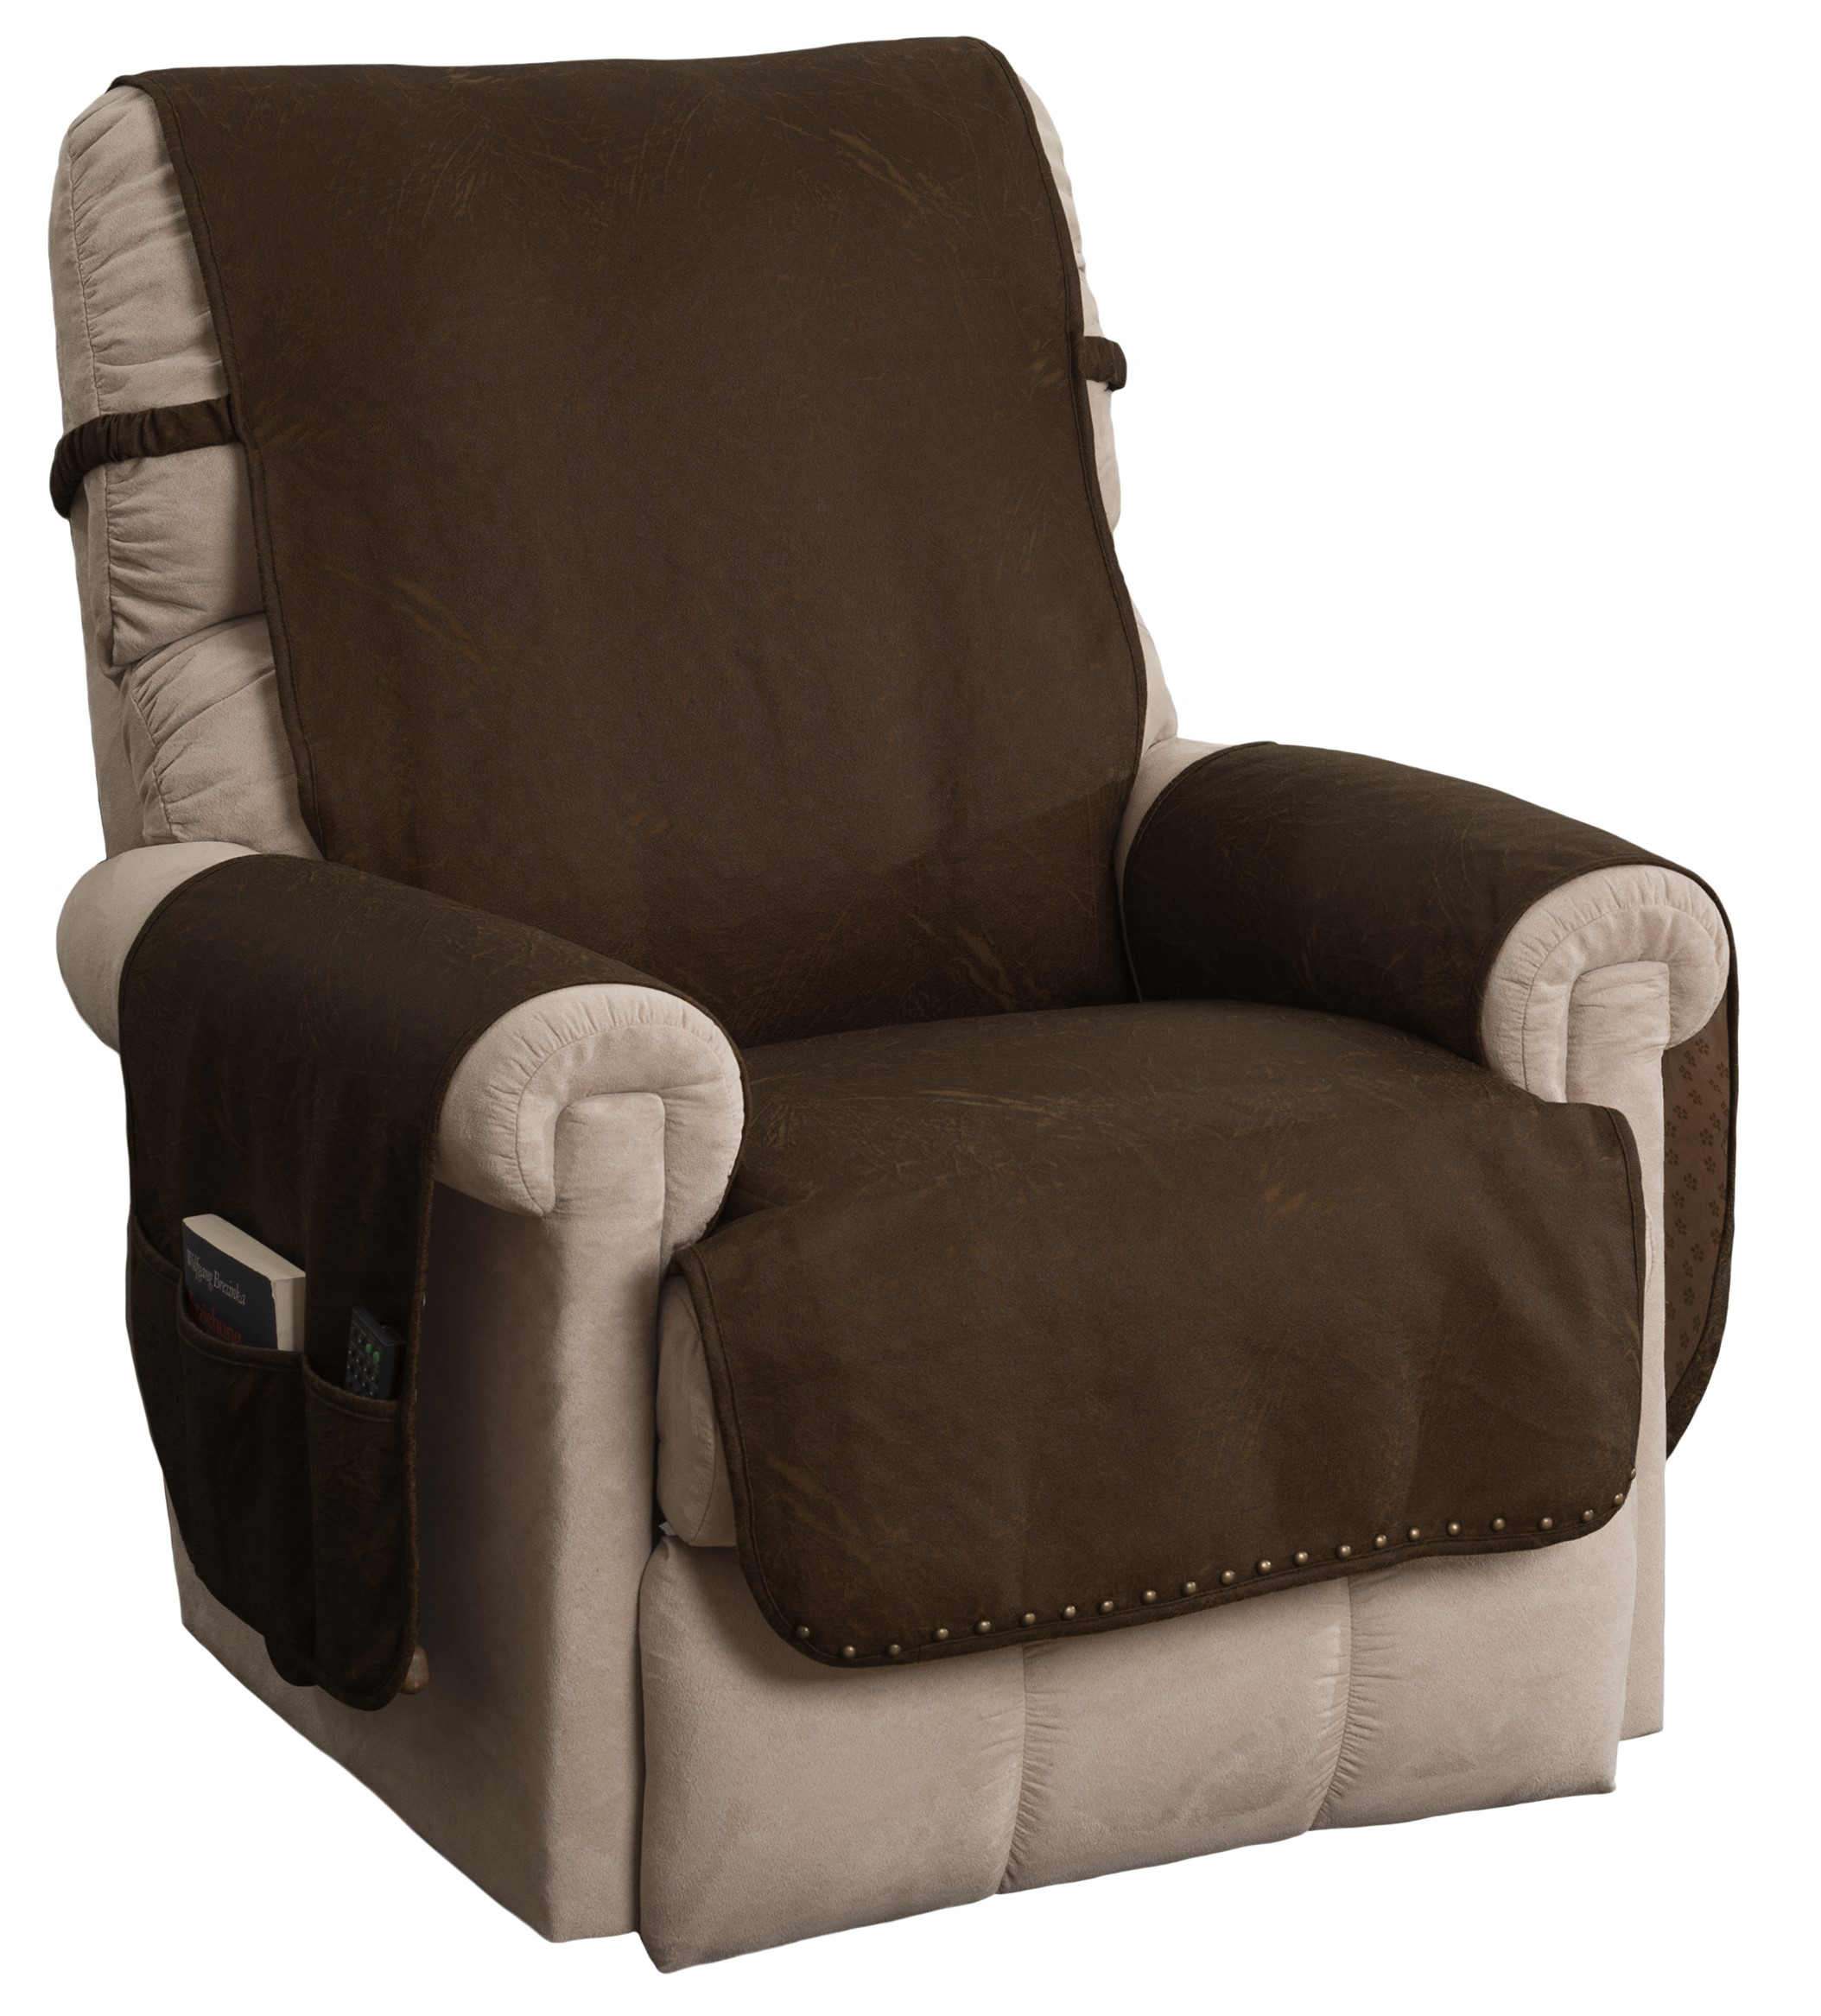 Innovative Textile Solutions Faux Leather Recliner Furniture Protector Slipcover